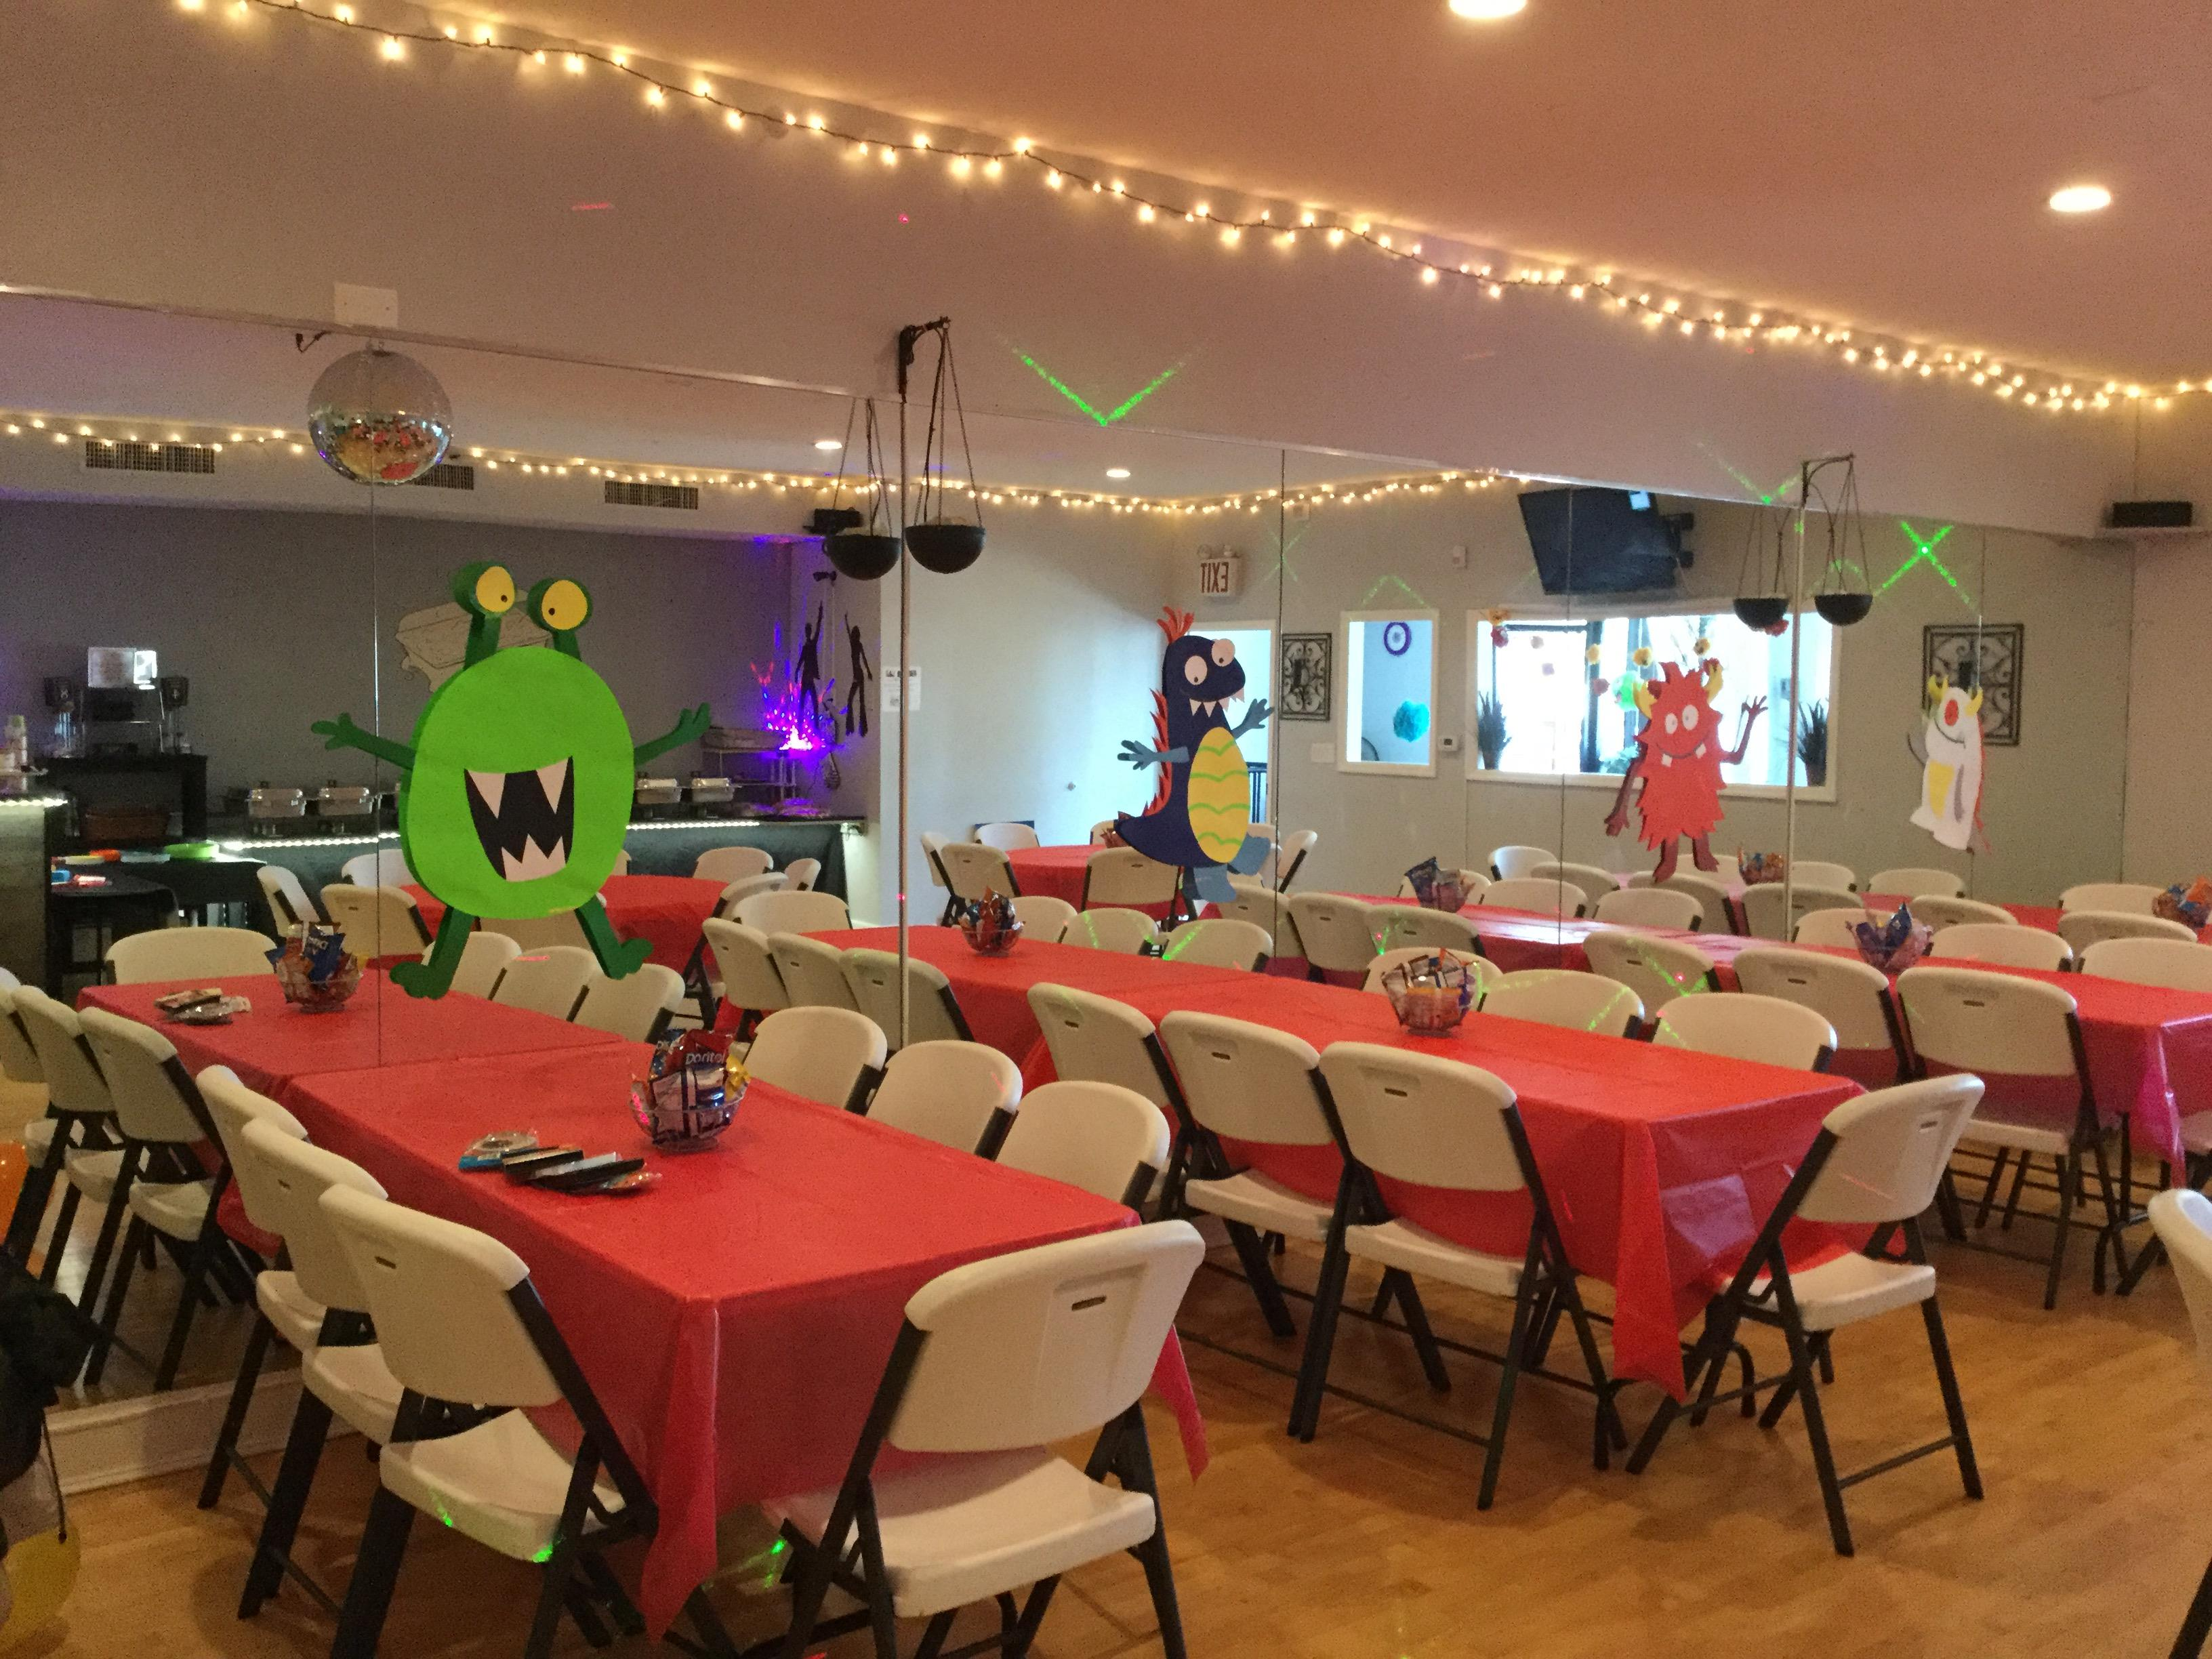 Susans House of Magic Meeting Party Room Rentals Birthday